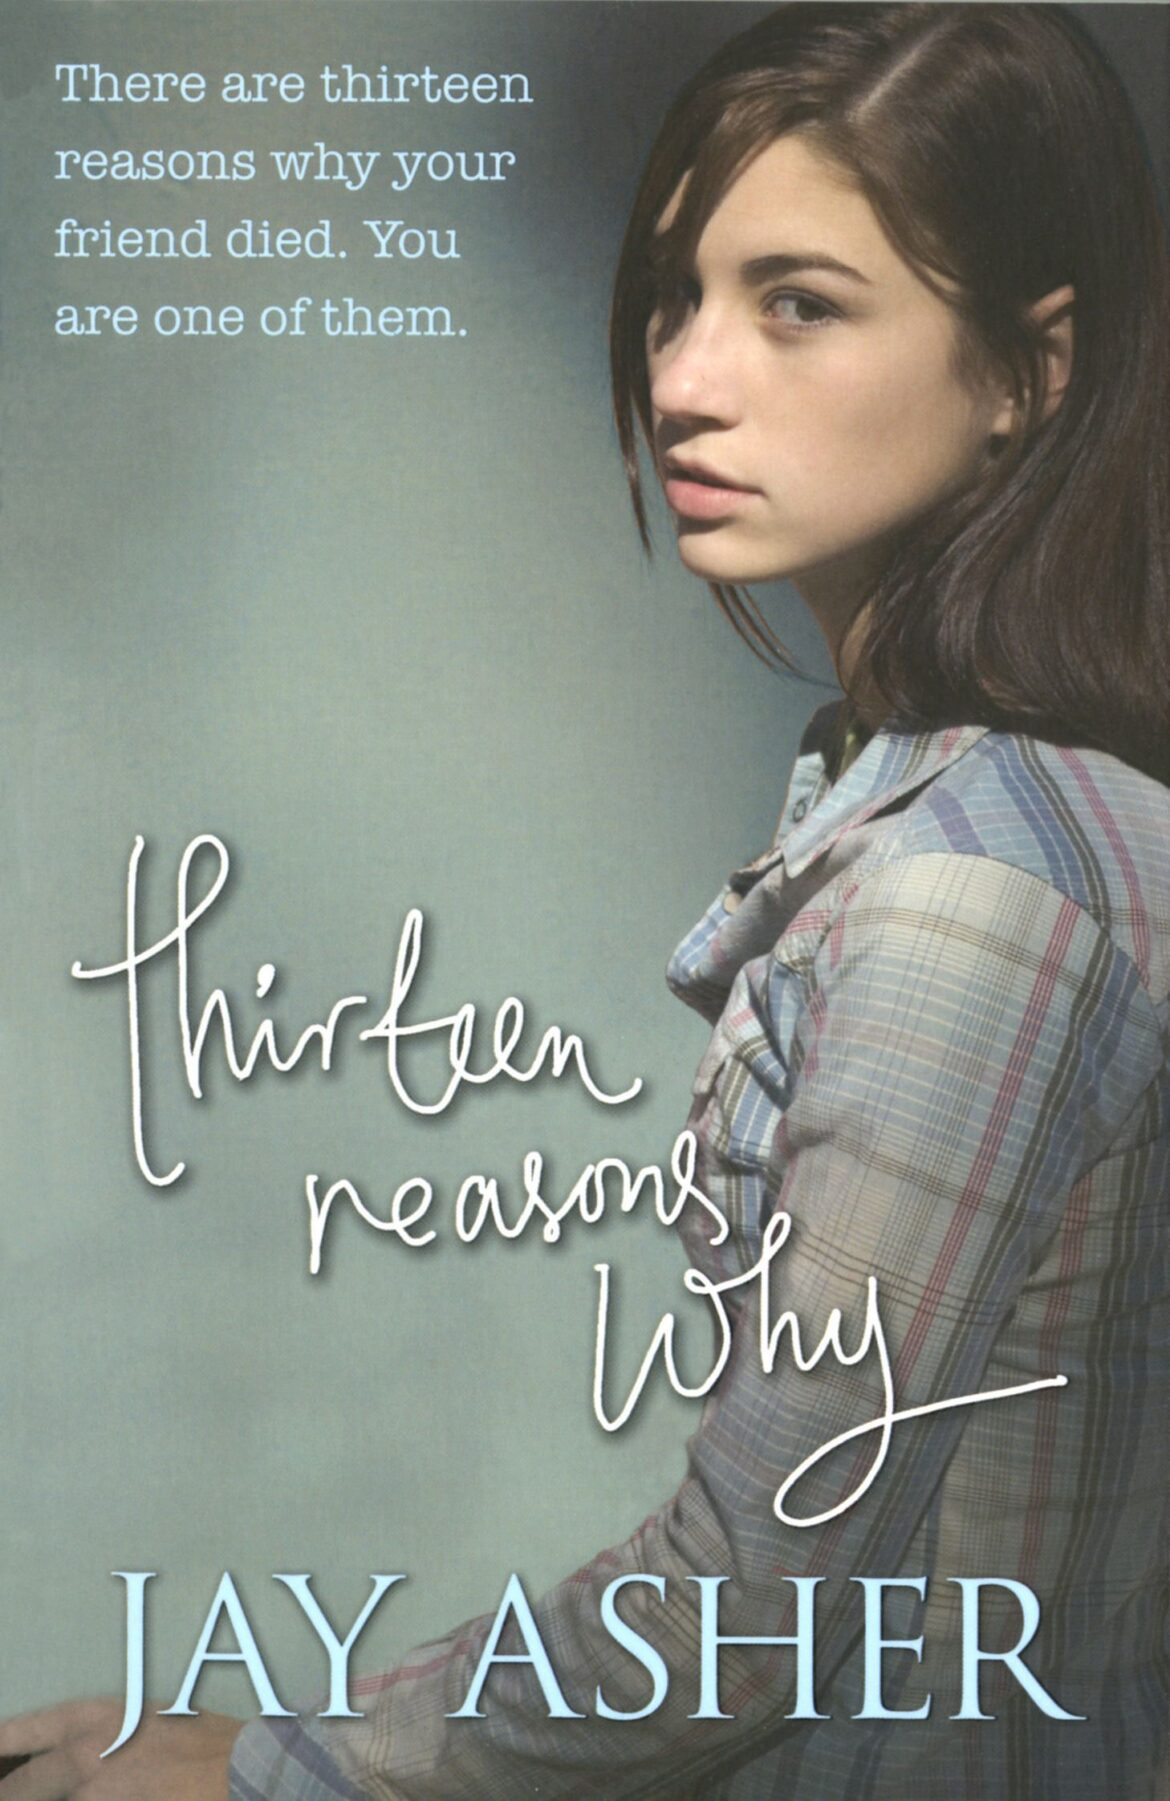 Book Review: '13 Reasons Why'